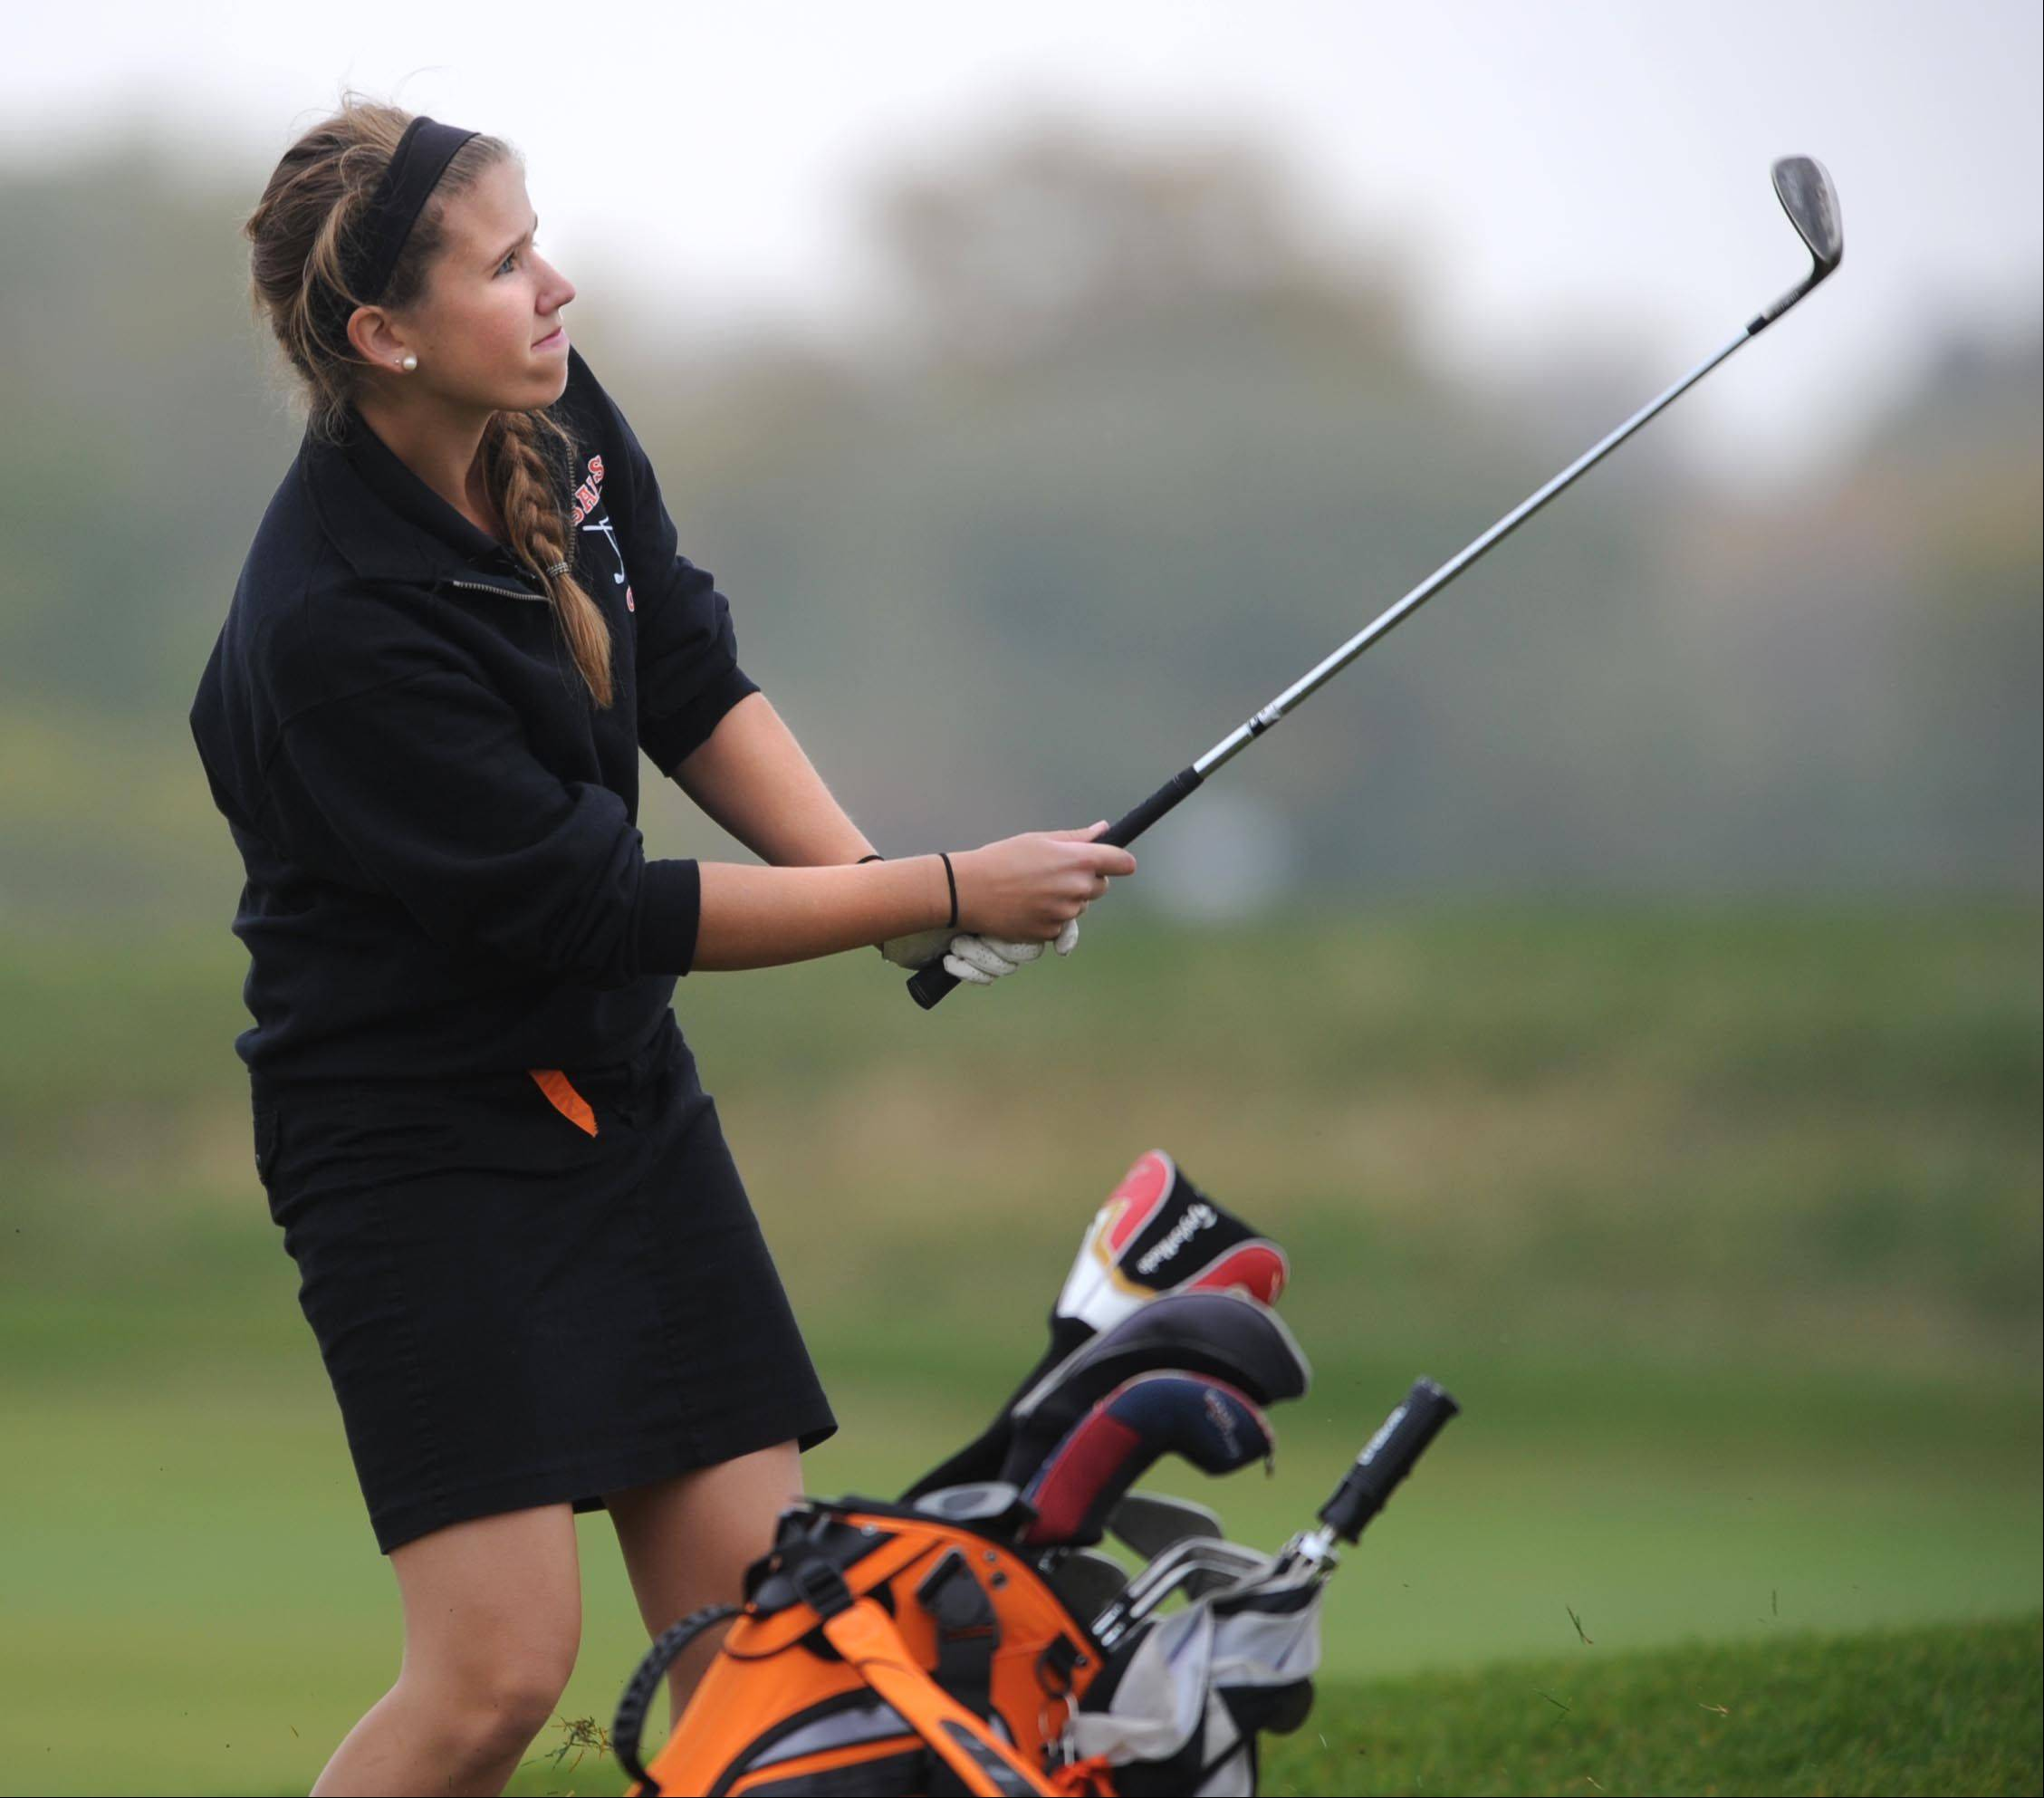 St. Charles East's Jane Noelker chips onto the first green at the Regional golf tournament Wednesday at the Golf Club of Illinois in Algonquin.